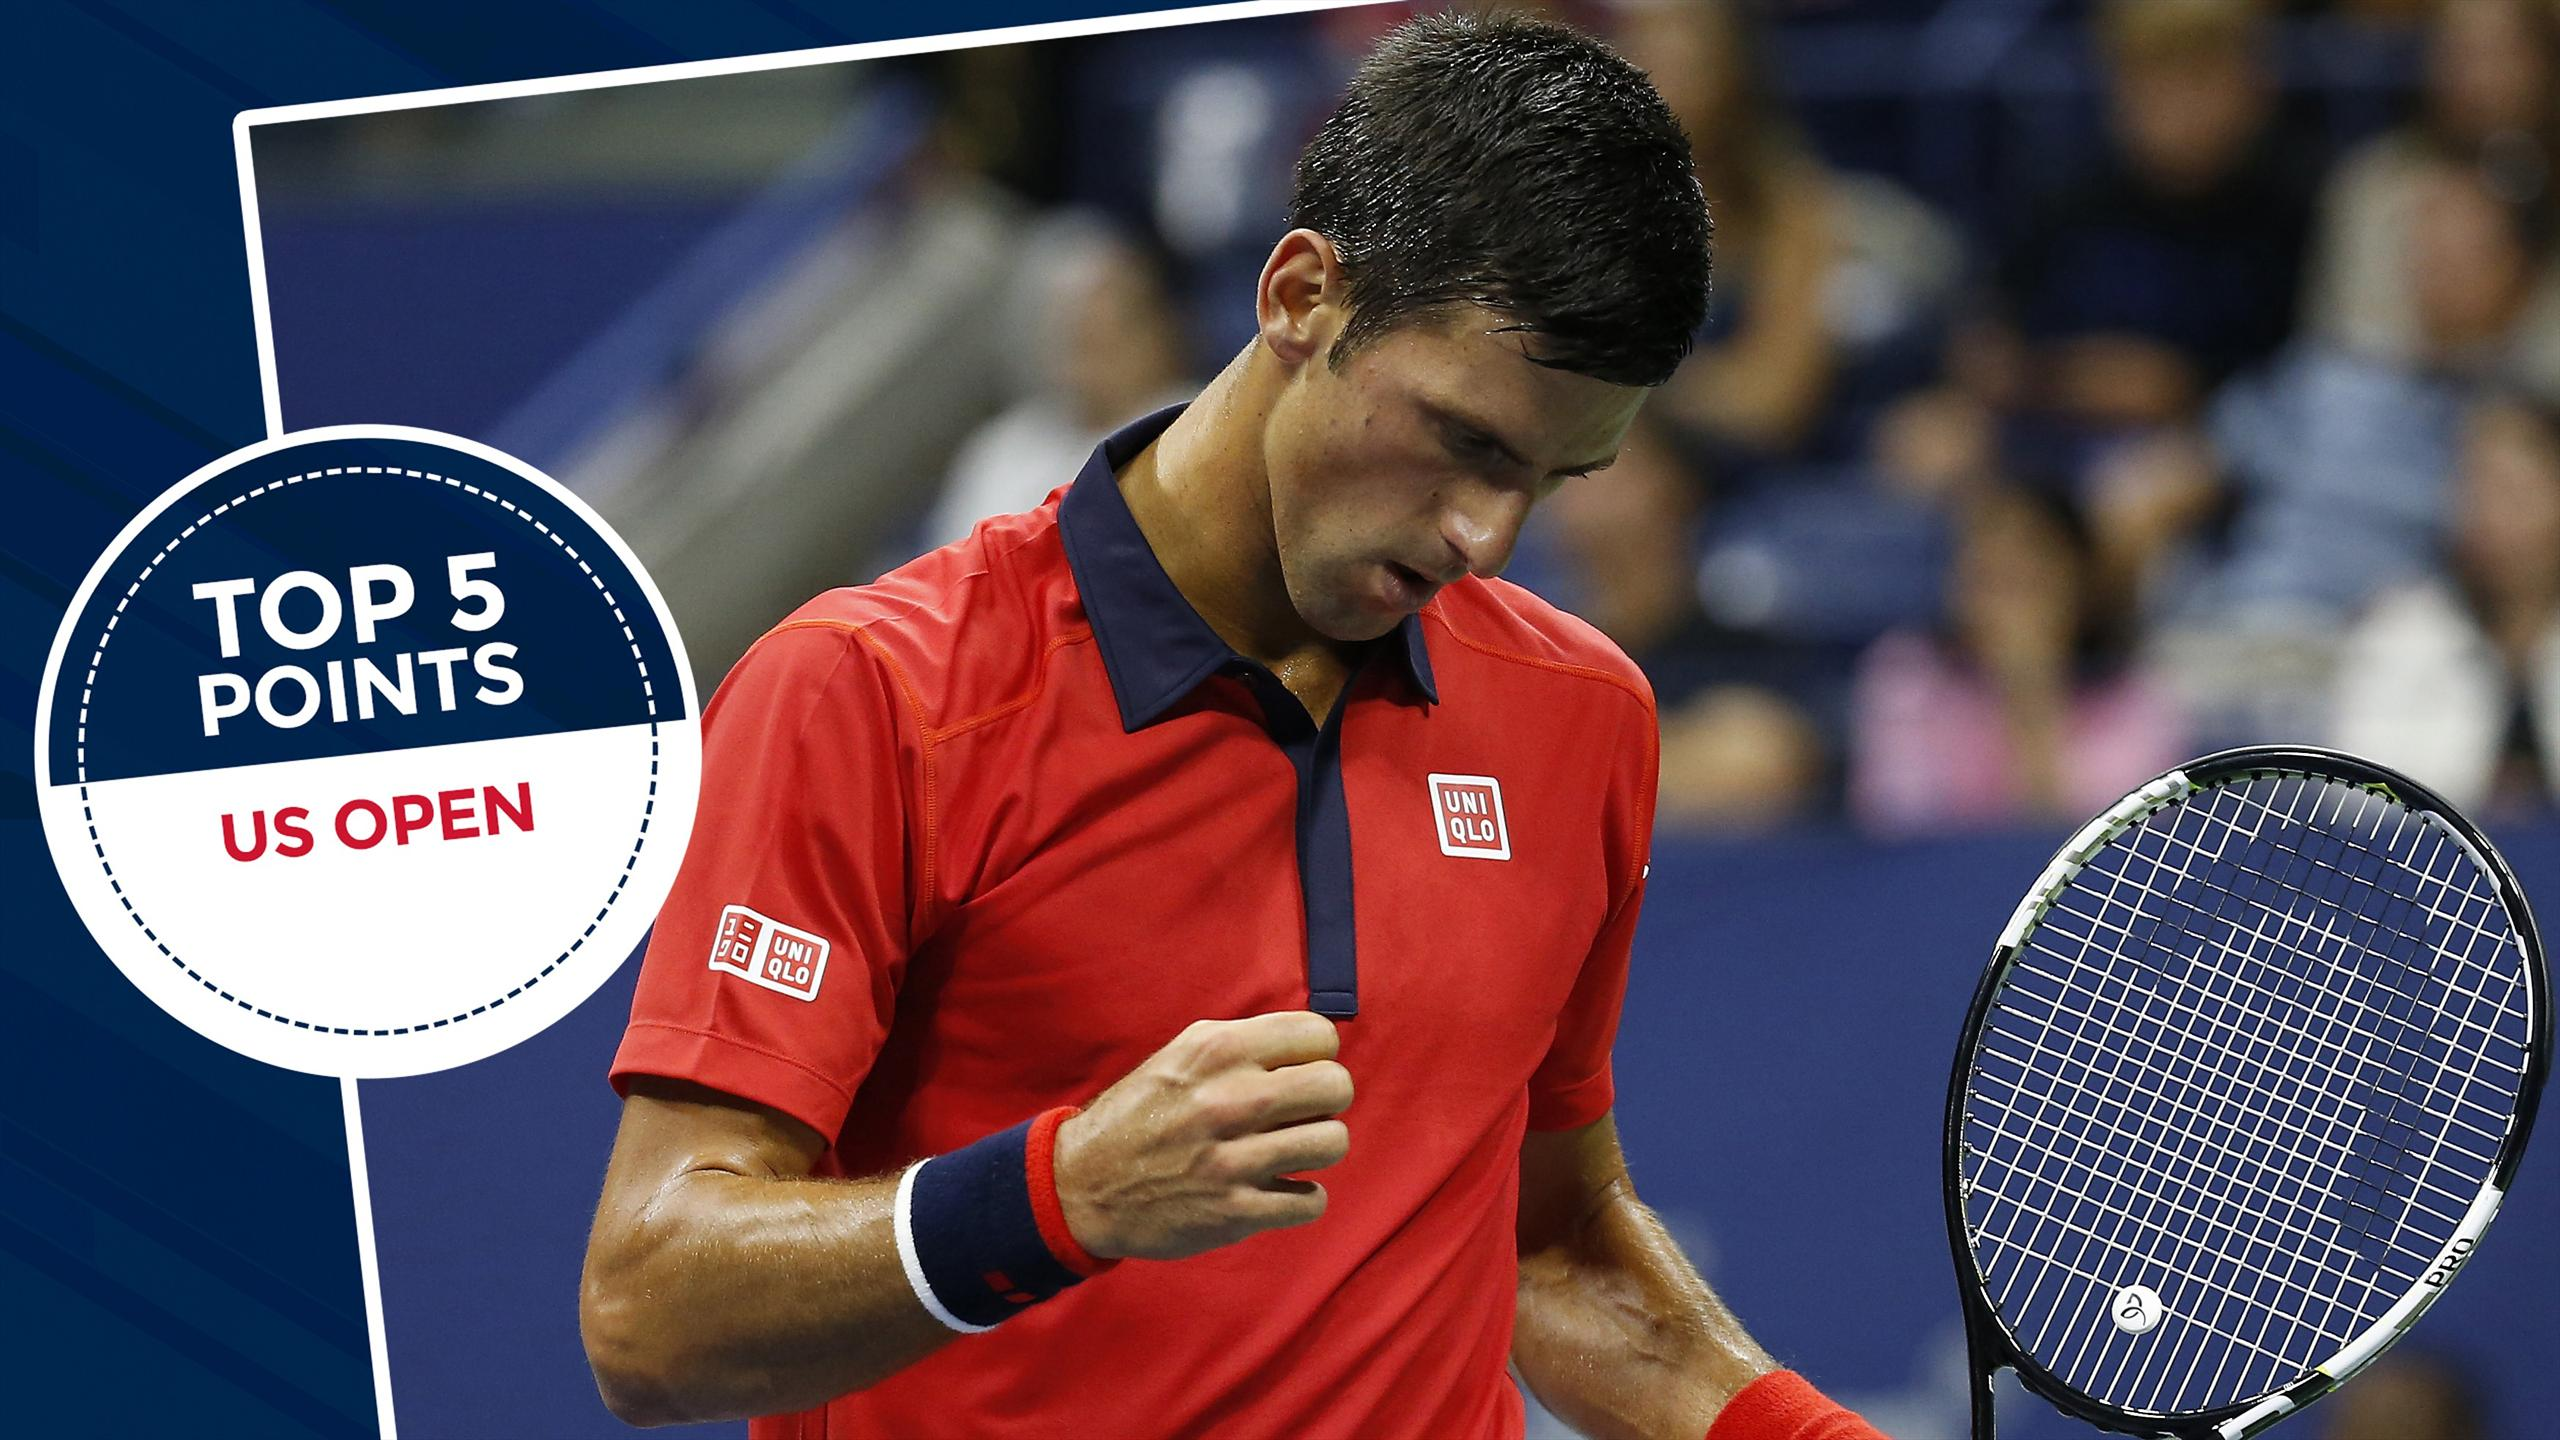 Top 5 points: Djokovic turns on the style; Fognini pulls off epic trick shot